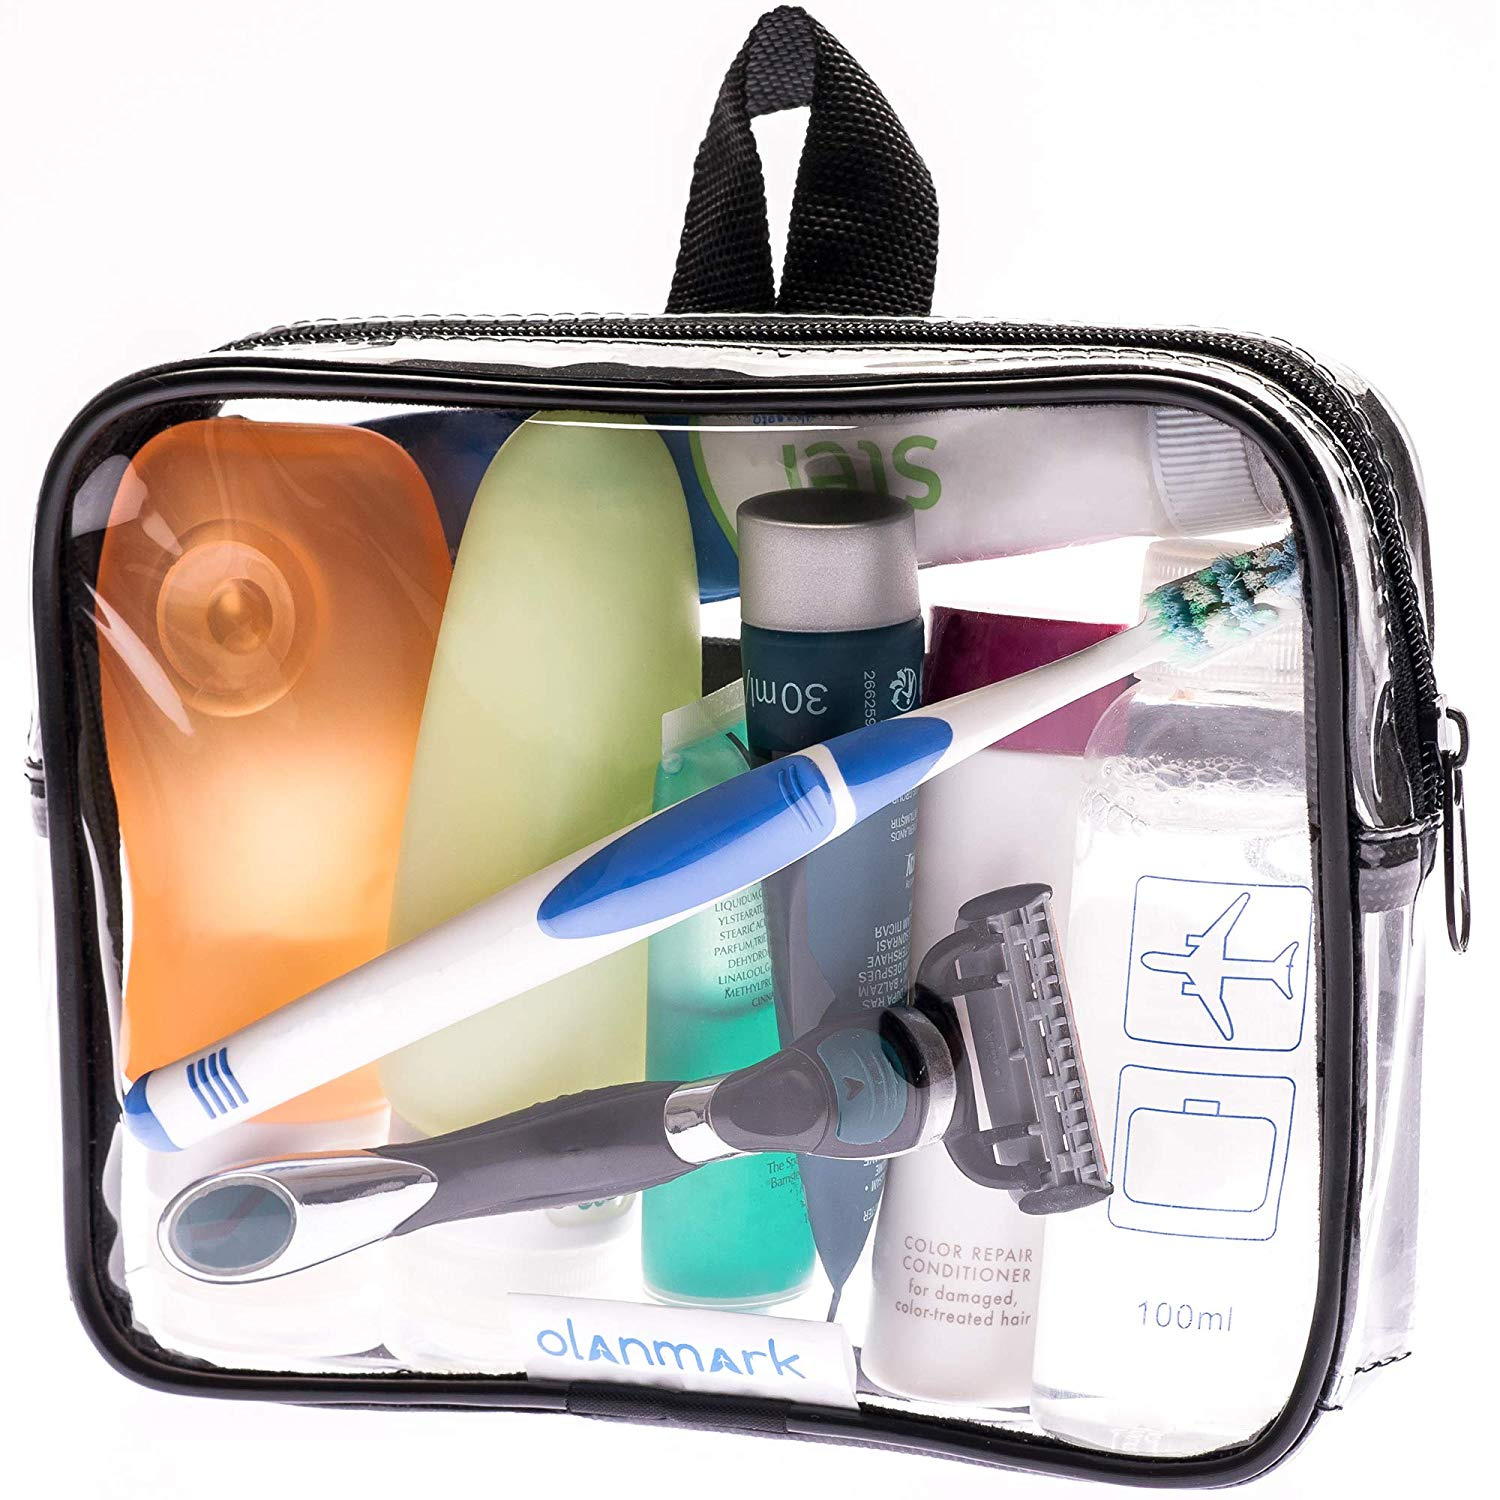 f2ee1b344b48 TSA Approved Toiletry Bag 3-1-1 Clear Travel Cosmetic Bag with Handle -  Quart Size Bag with Zipper - Carry-on Luggage Clear Toiletry Bag for  Liquids - ...